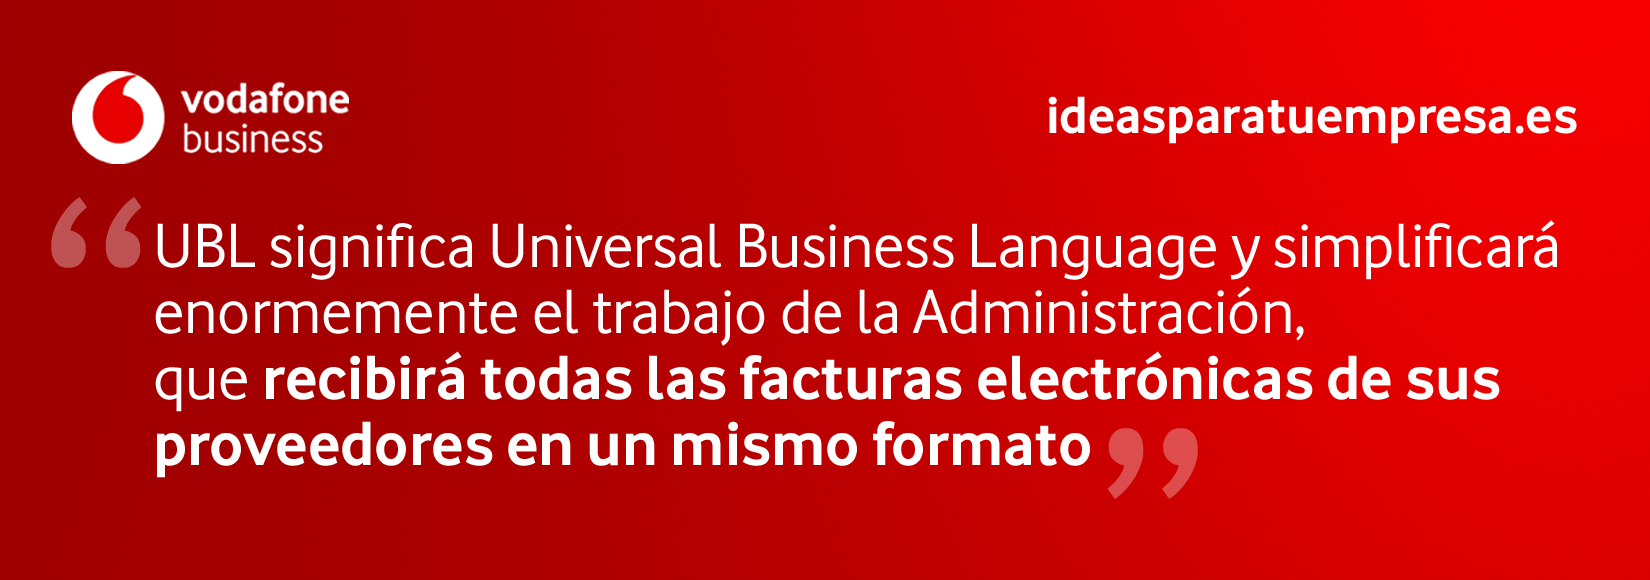 UBL: Universal Business Language